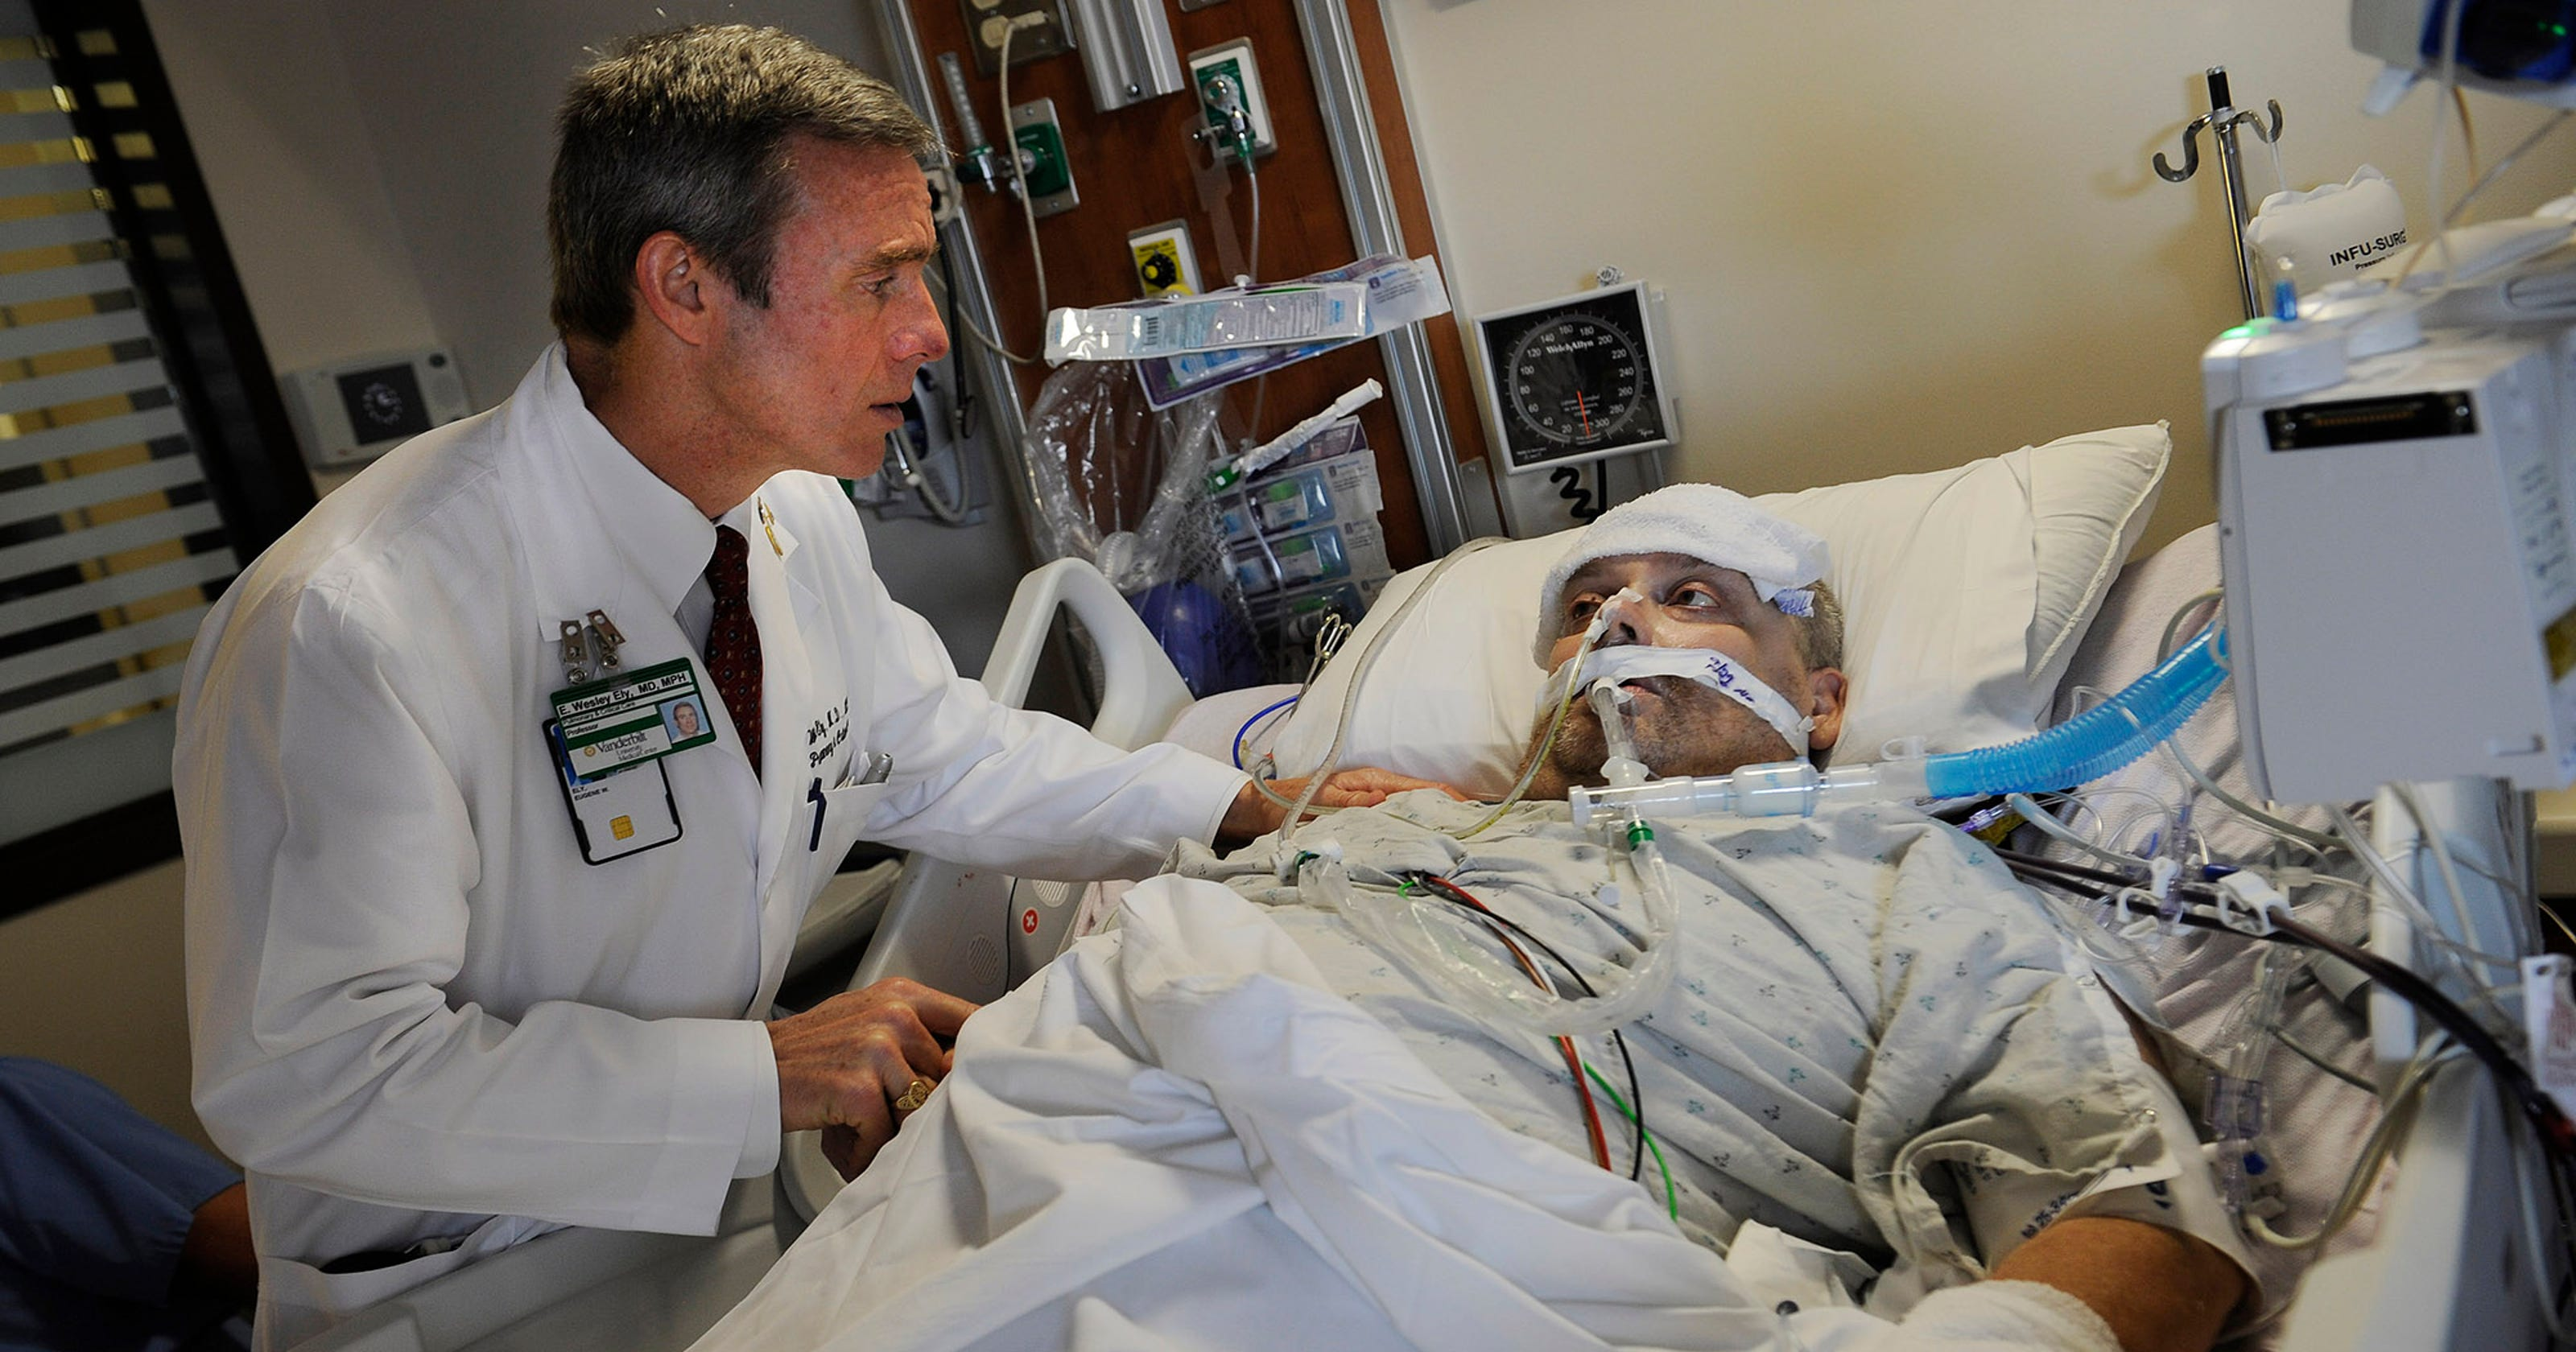 Study: Extended ICU stays cause brain damage